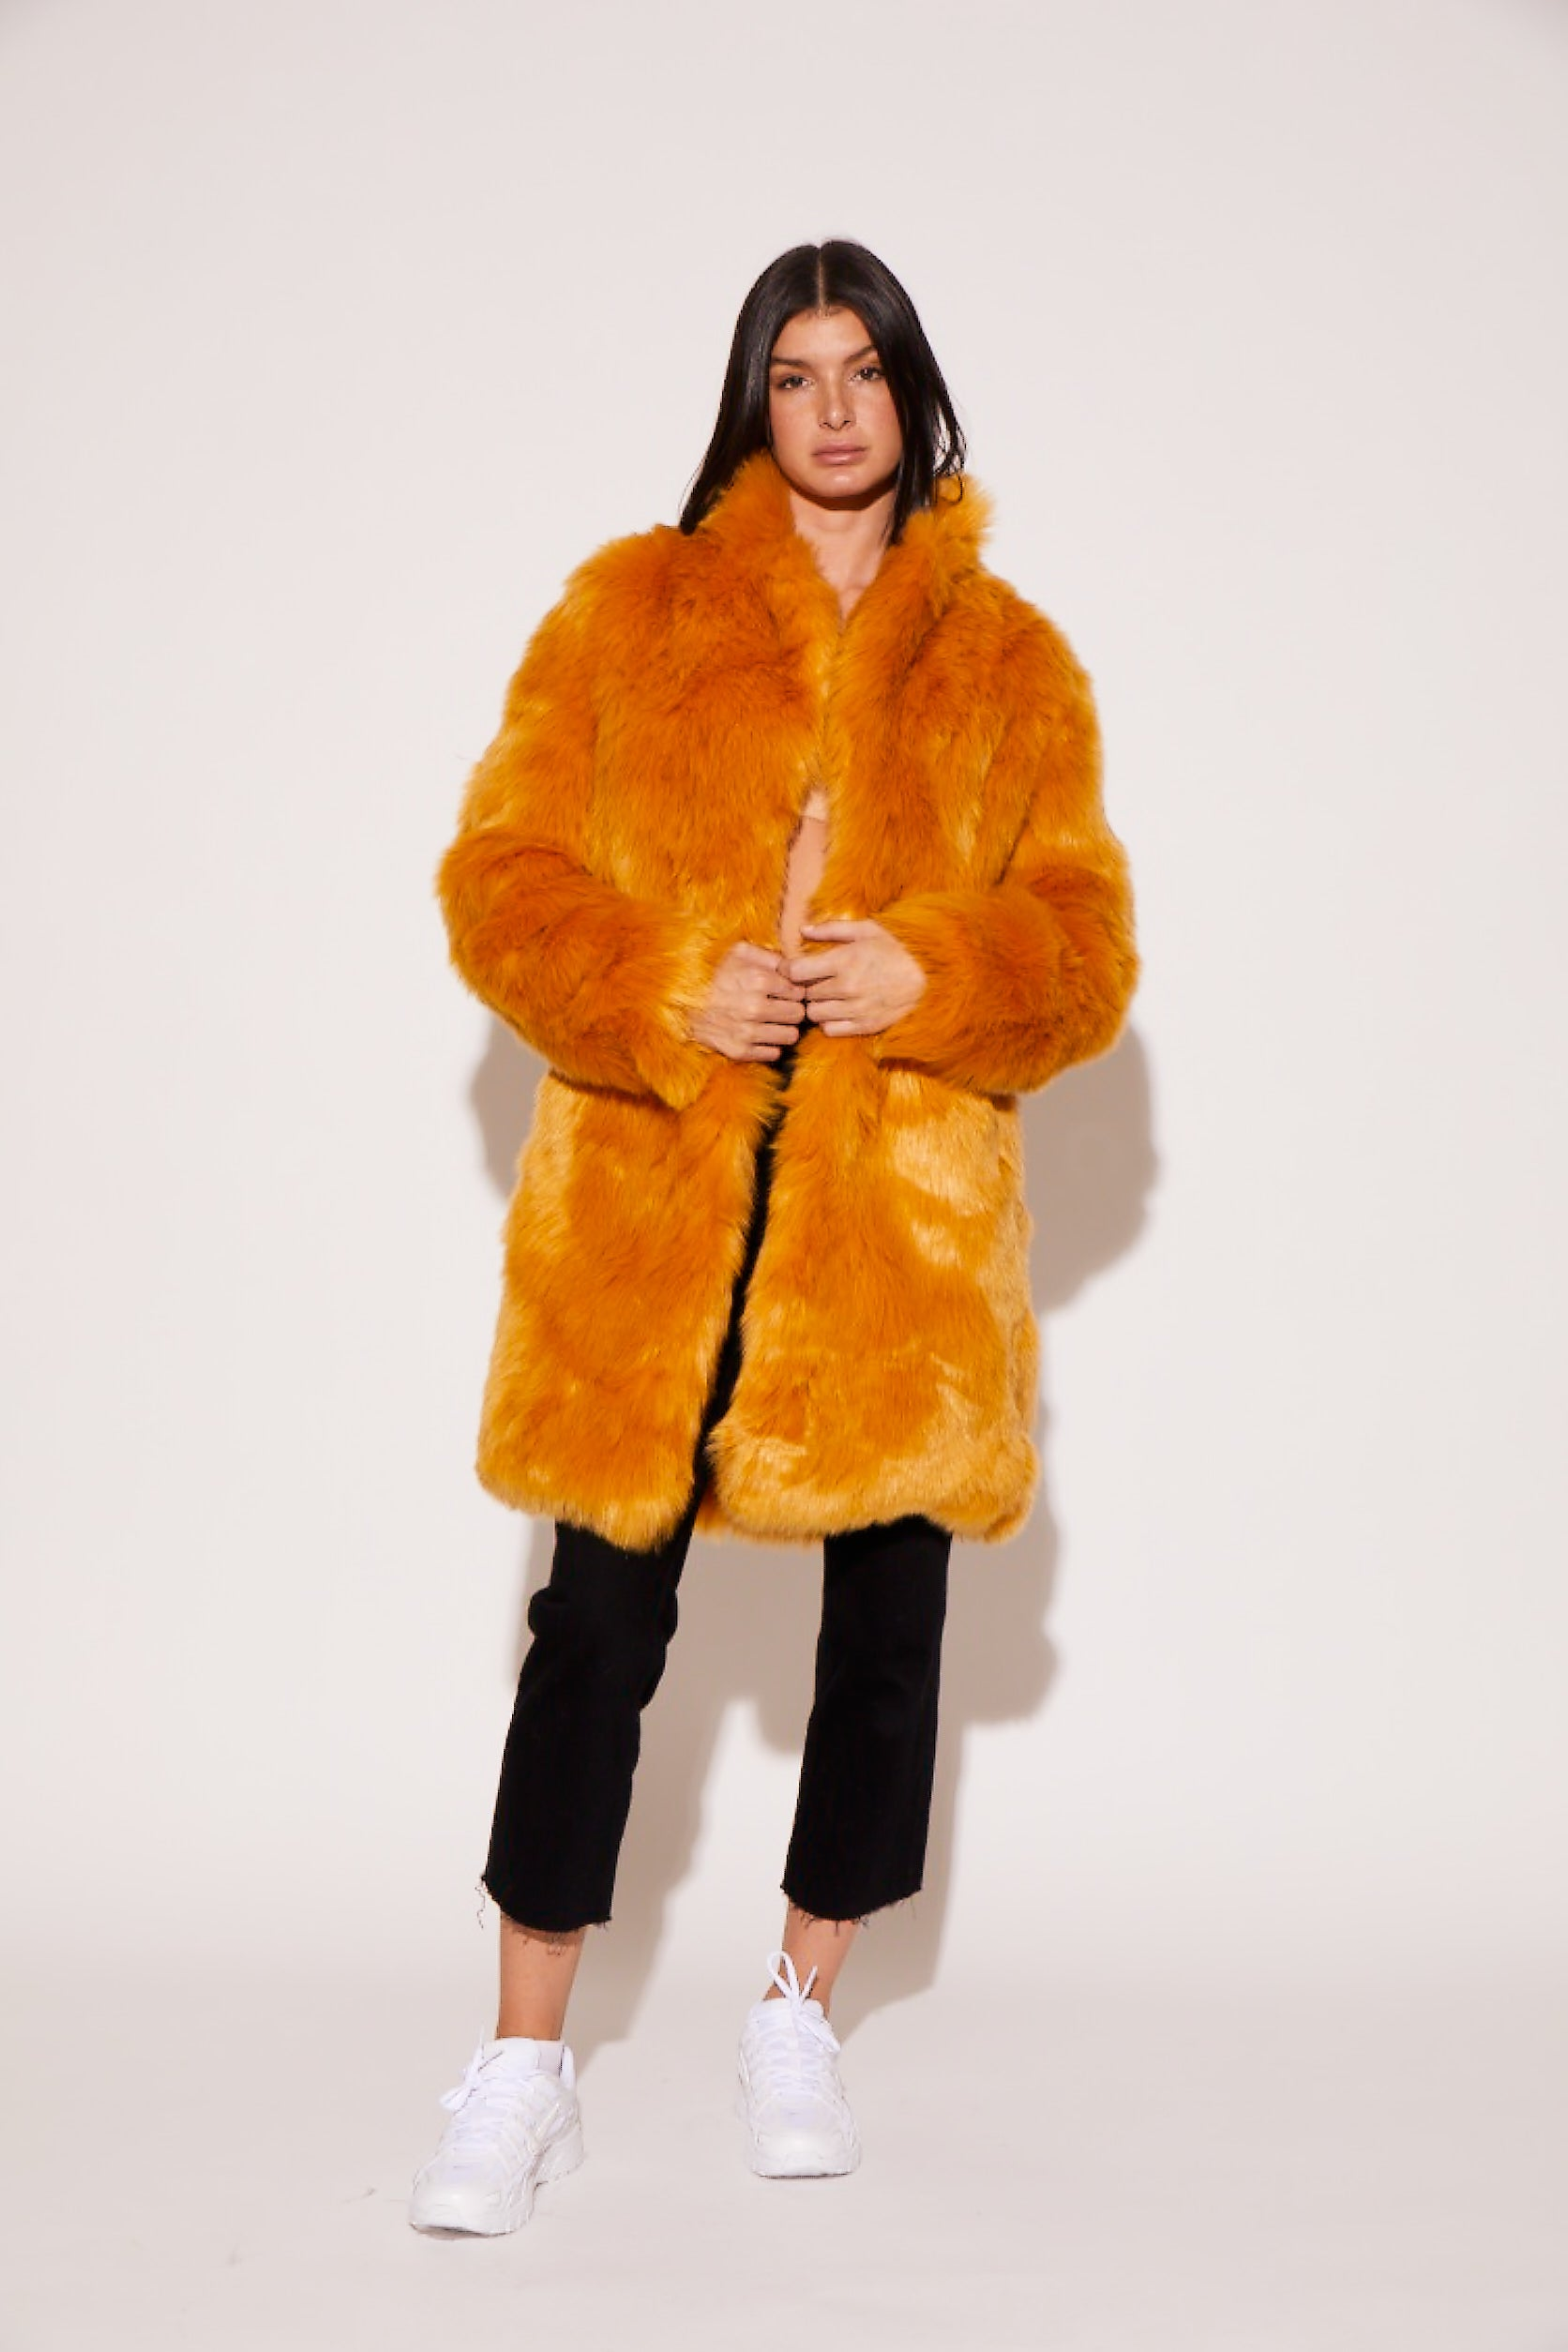 shaci neon tangerine vegan faux fur coat